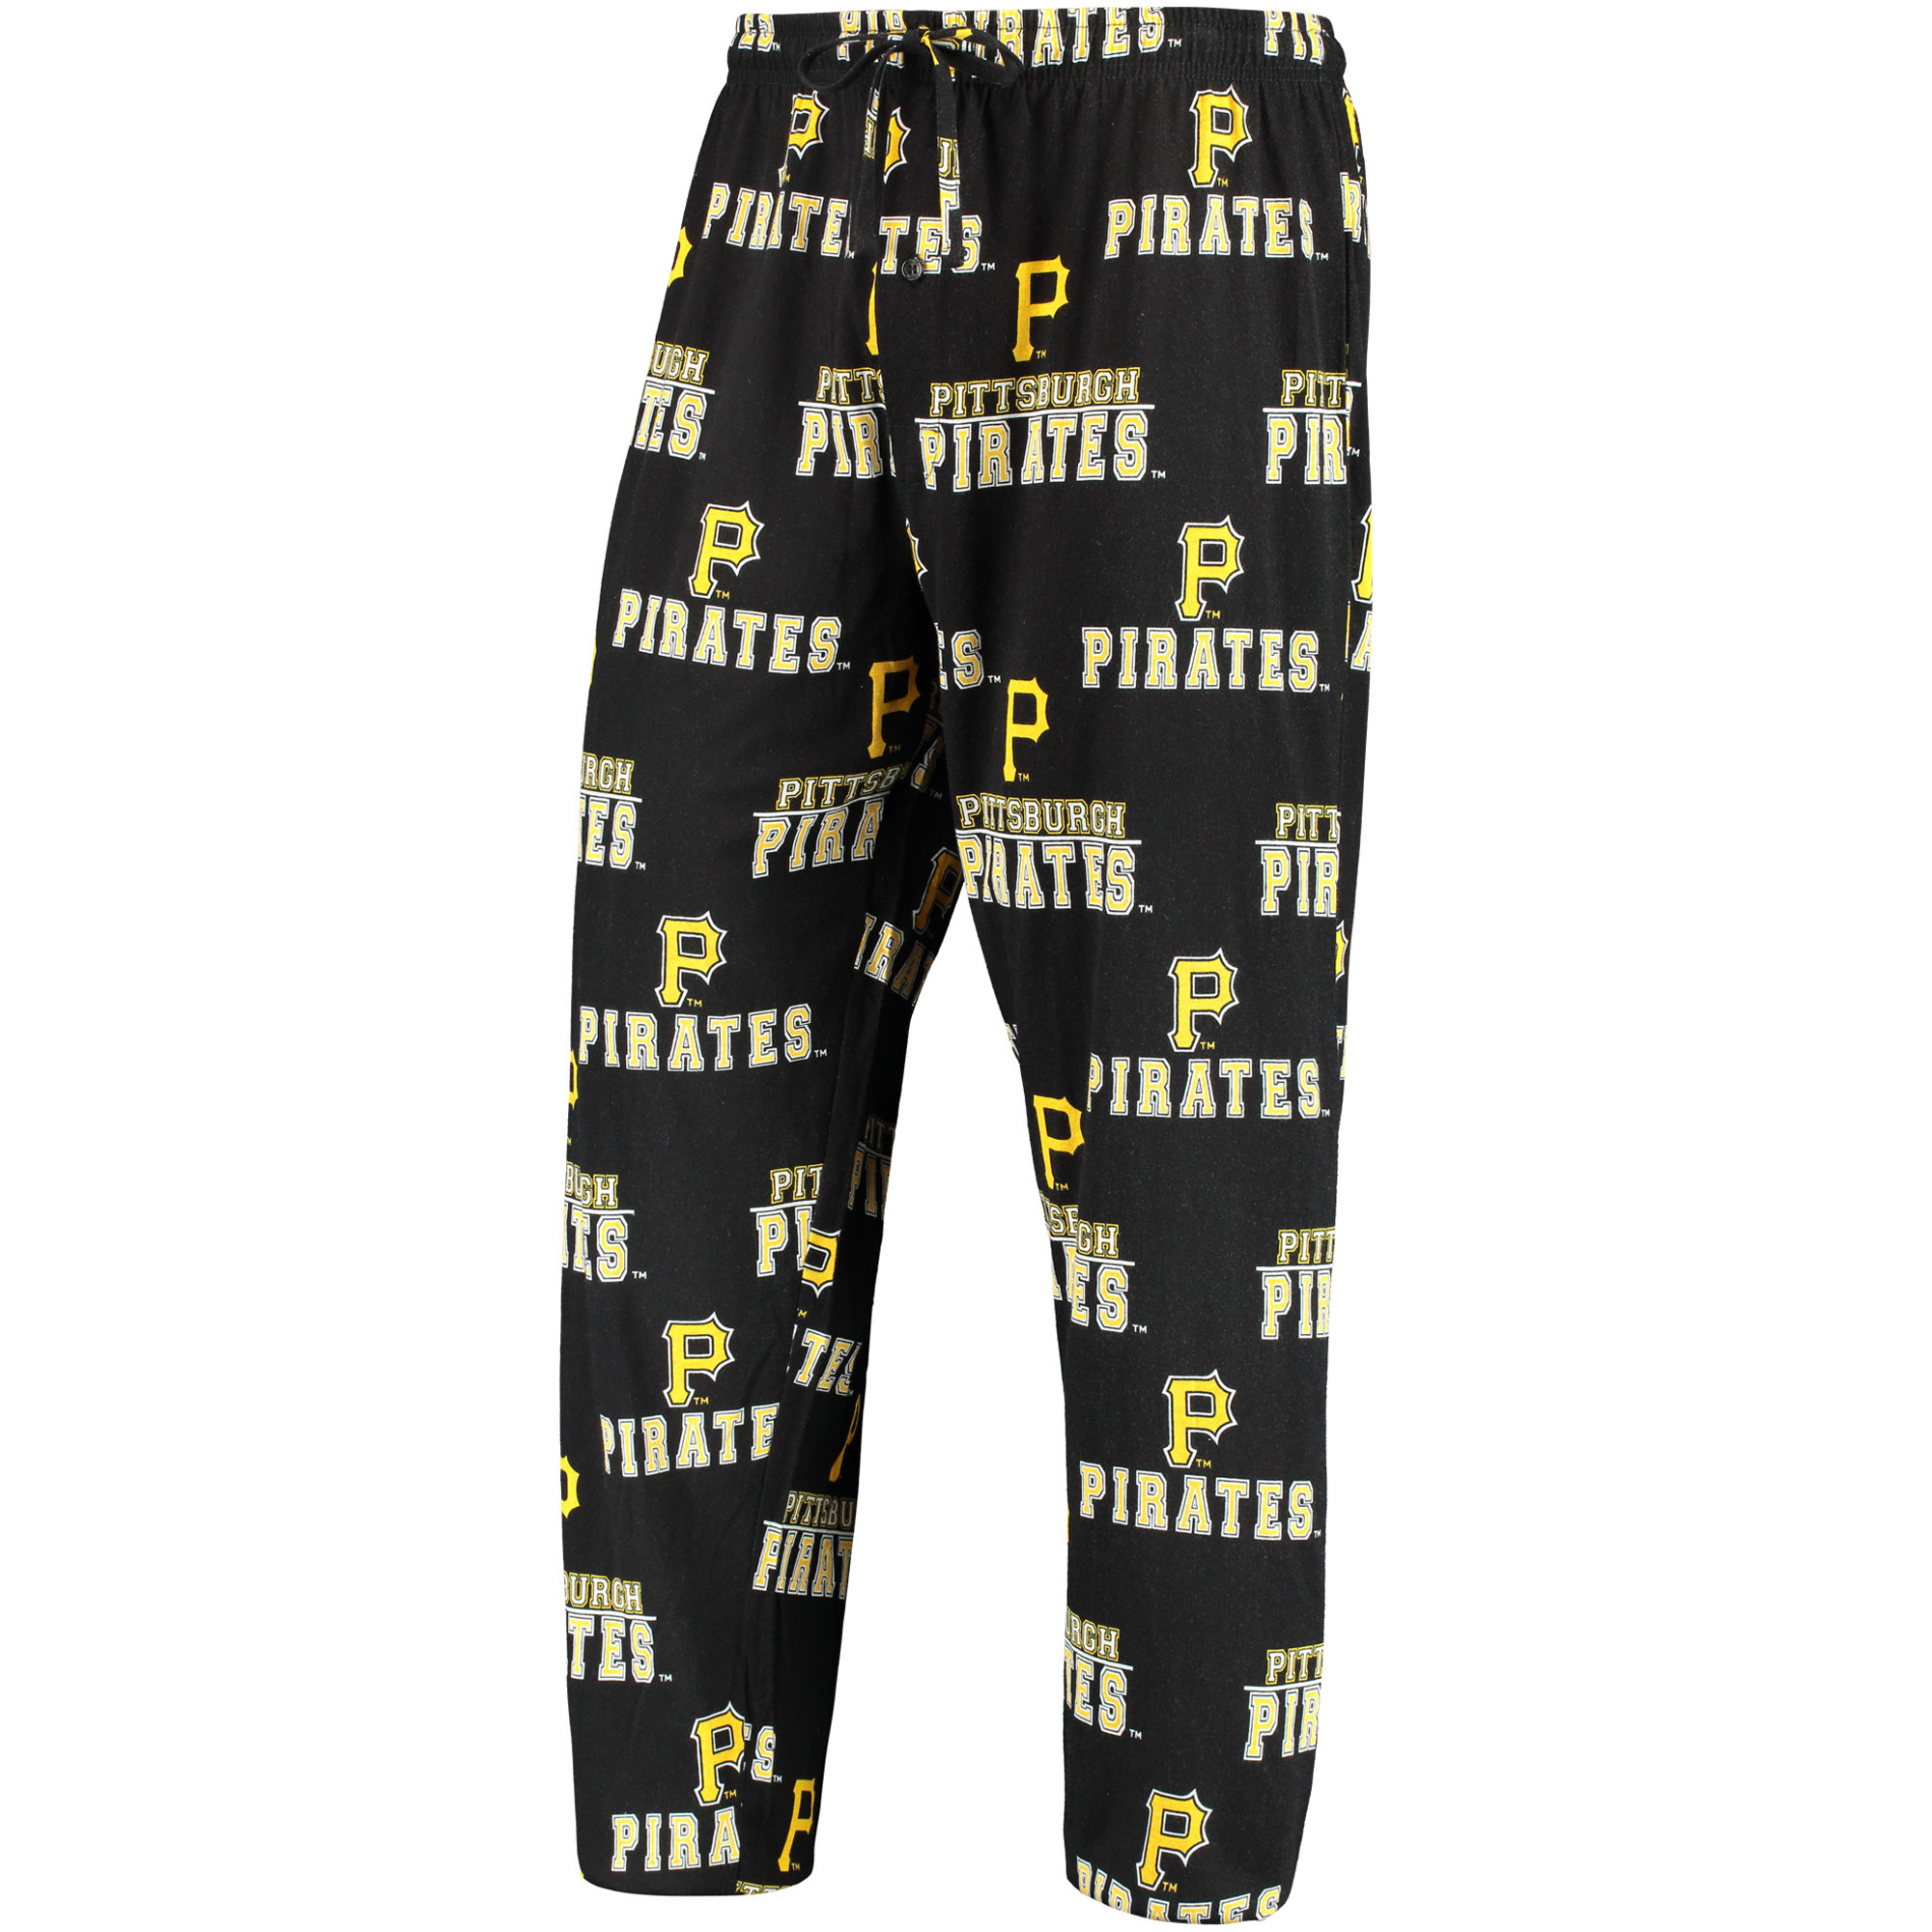 Pittsburgh Pirates Concepts Sport Pastime Knit Pants - Black